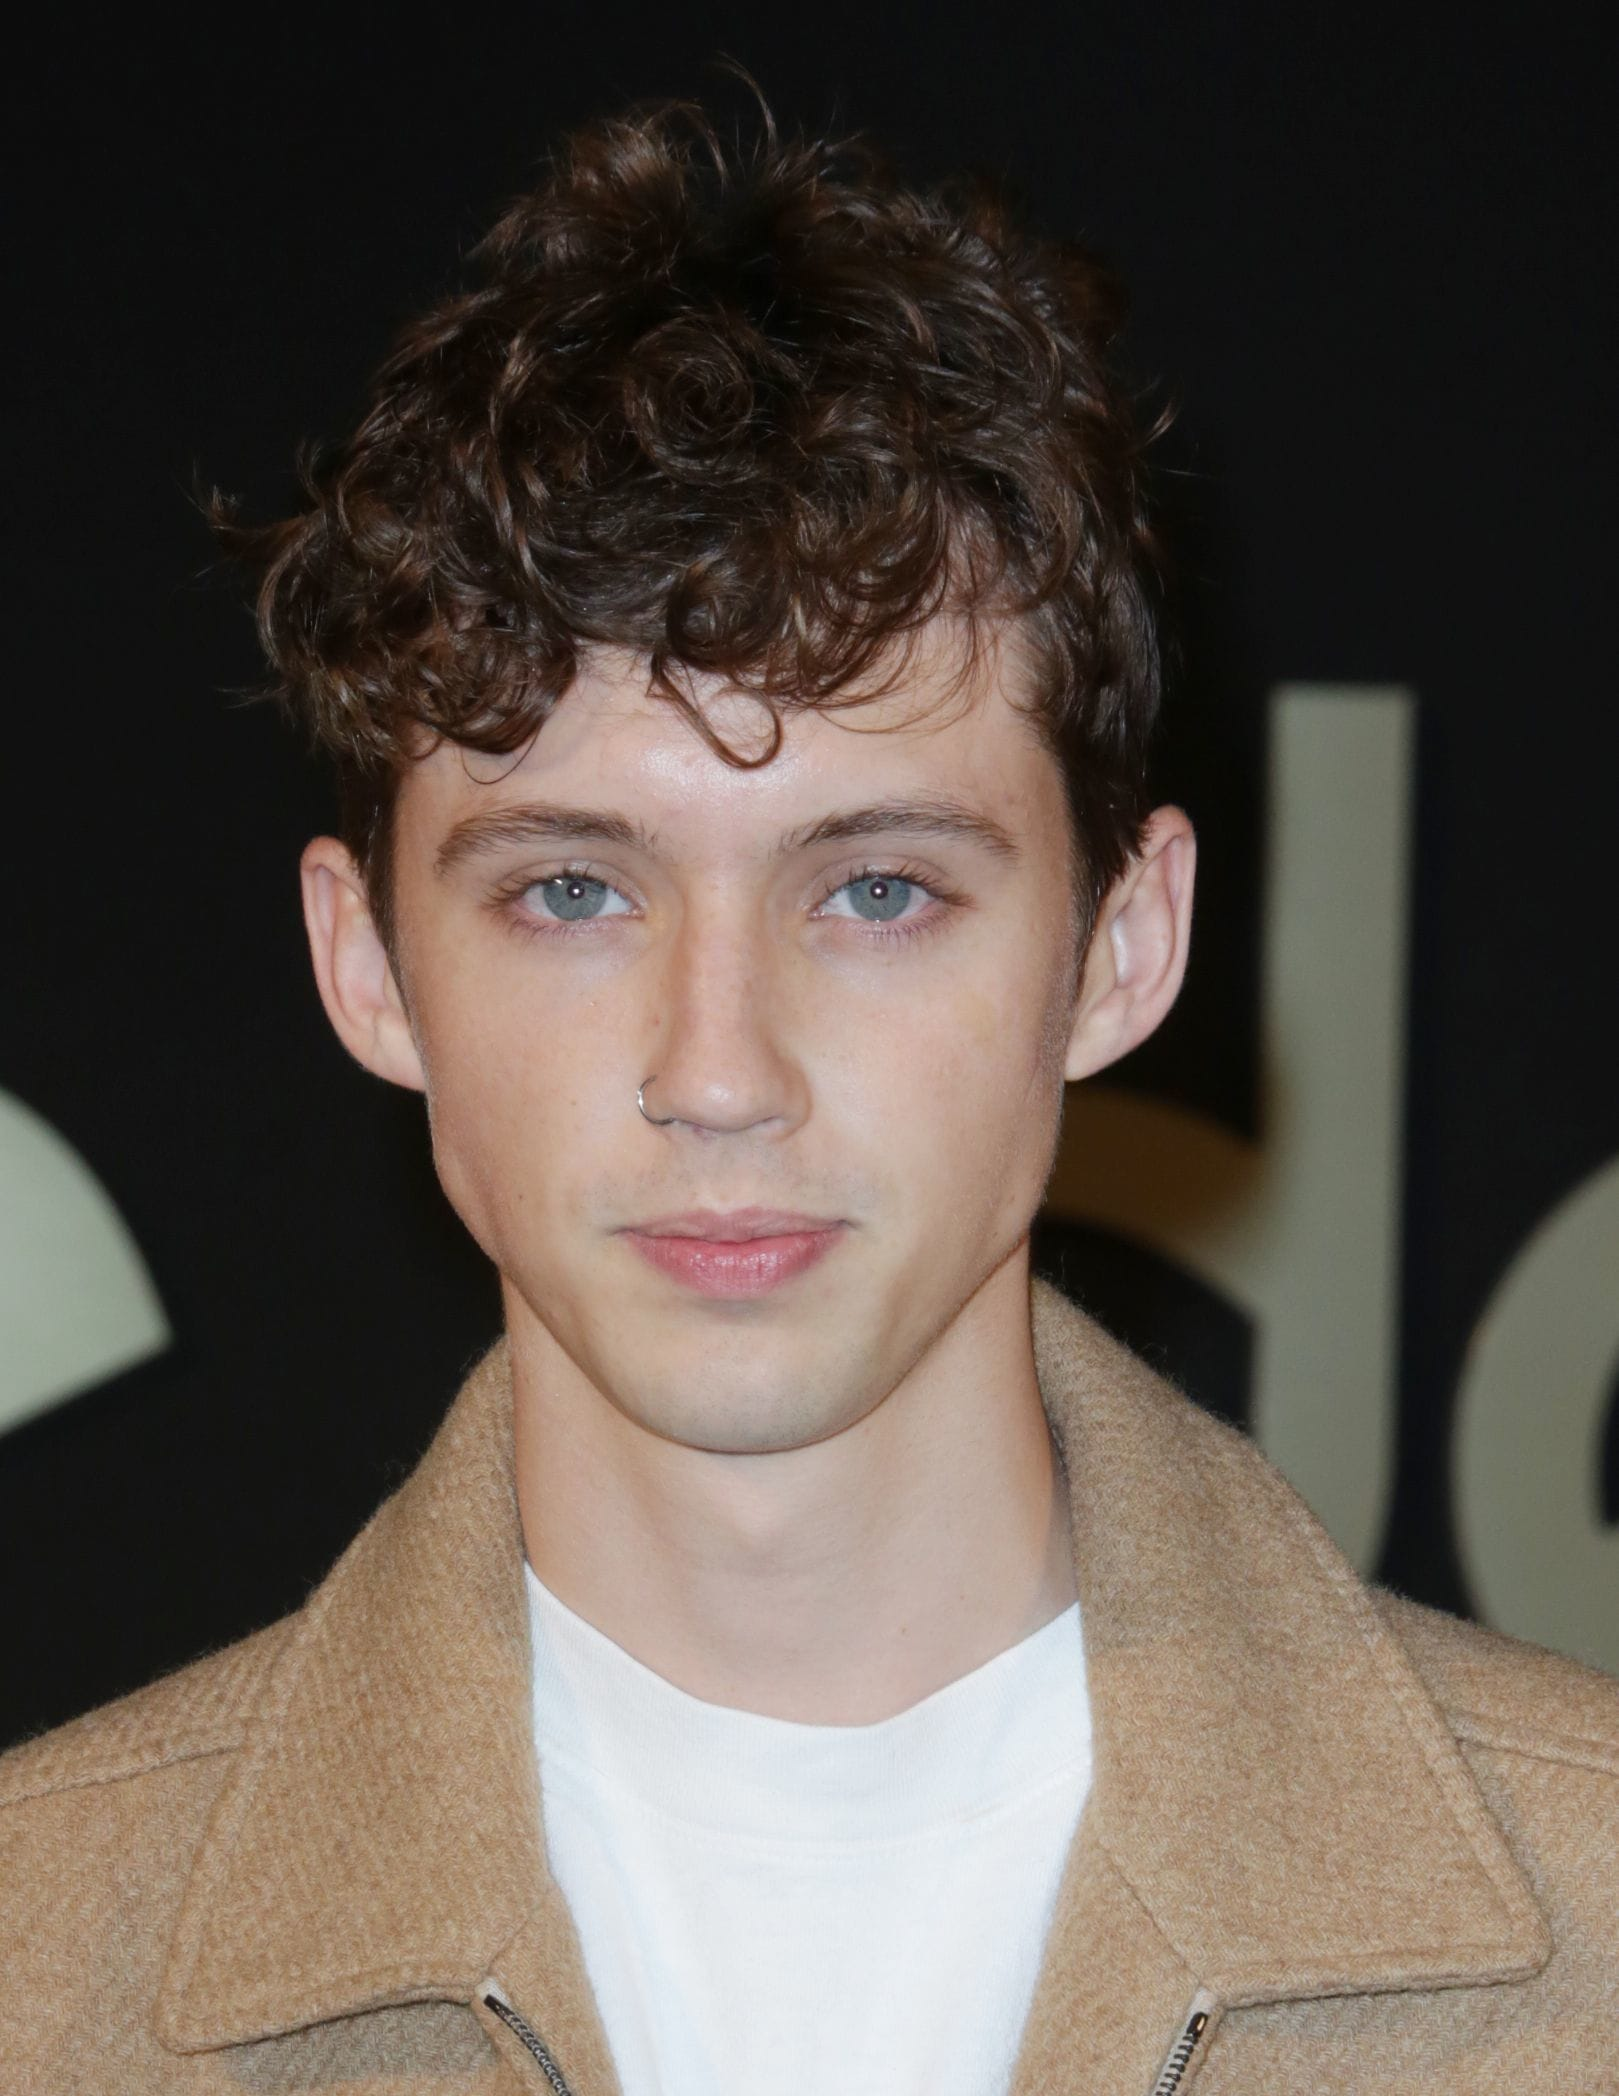 Troye Sivan was fifth.